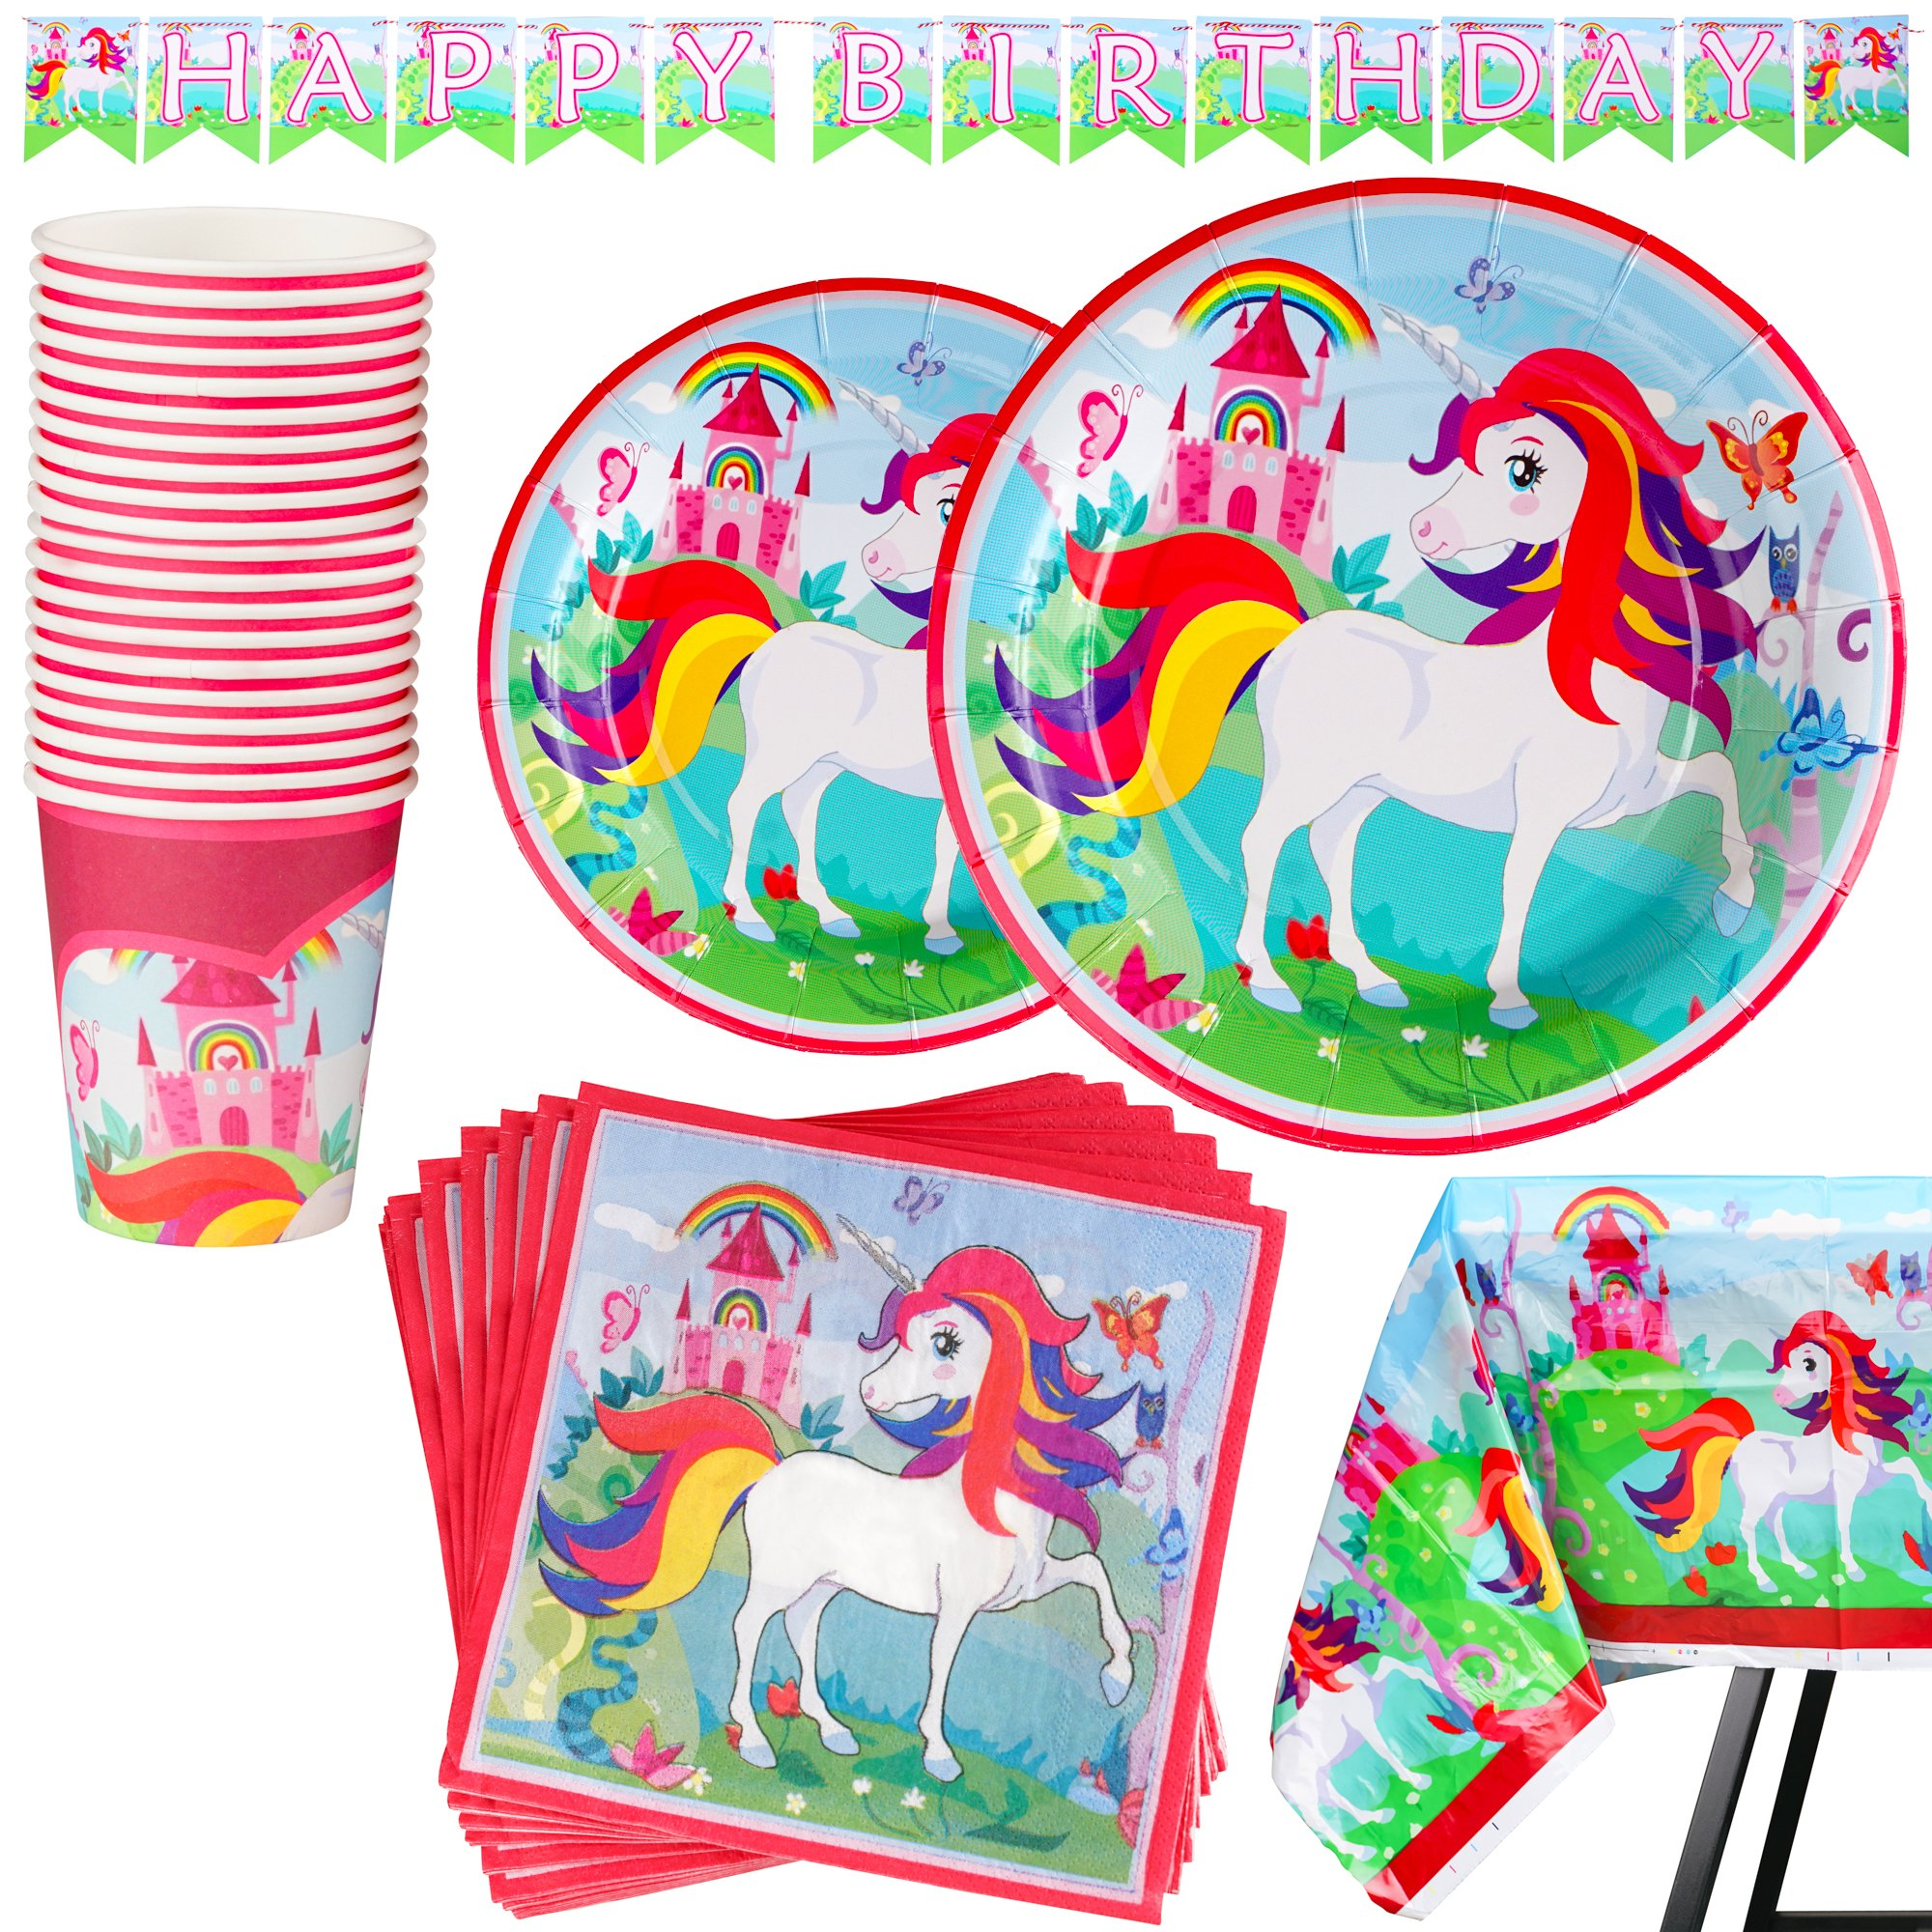 82 Piece Unicorn Party Supplies Set Including Banner, Plates, Cups, Napkins and Tablecloth, Serves 20 by Scale Rank (Image #1)